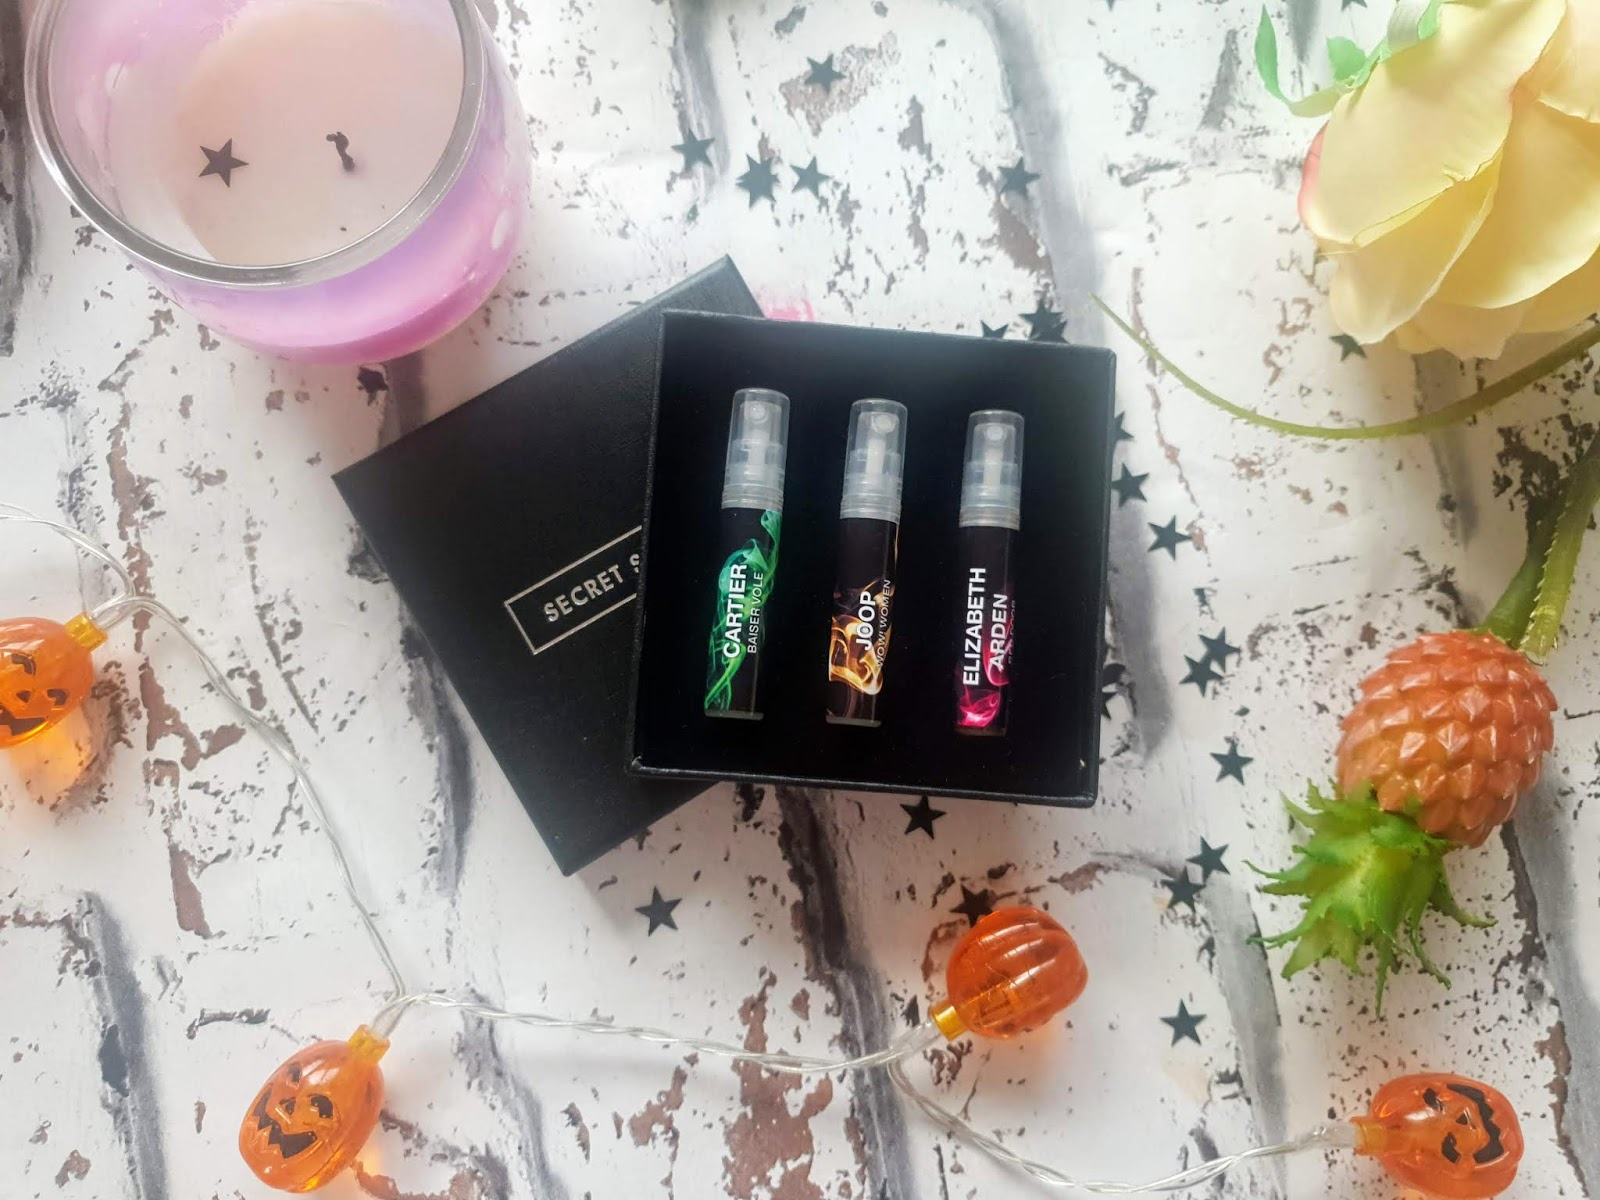 Secret scent box review September 2018